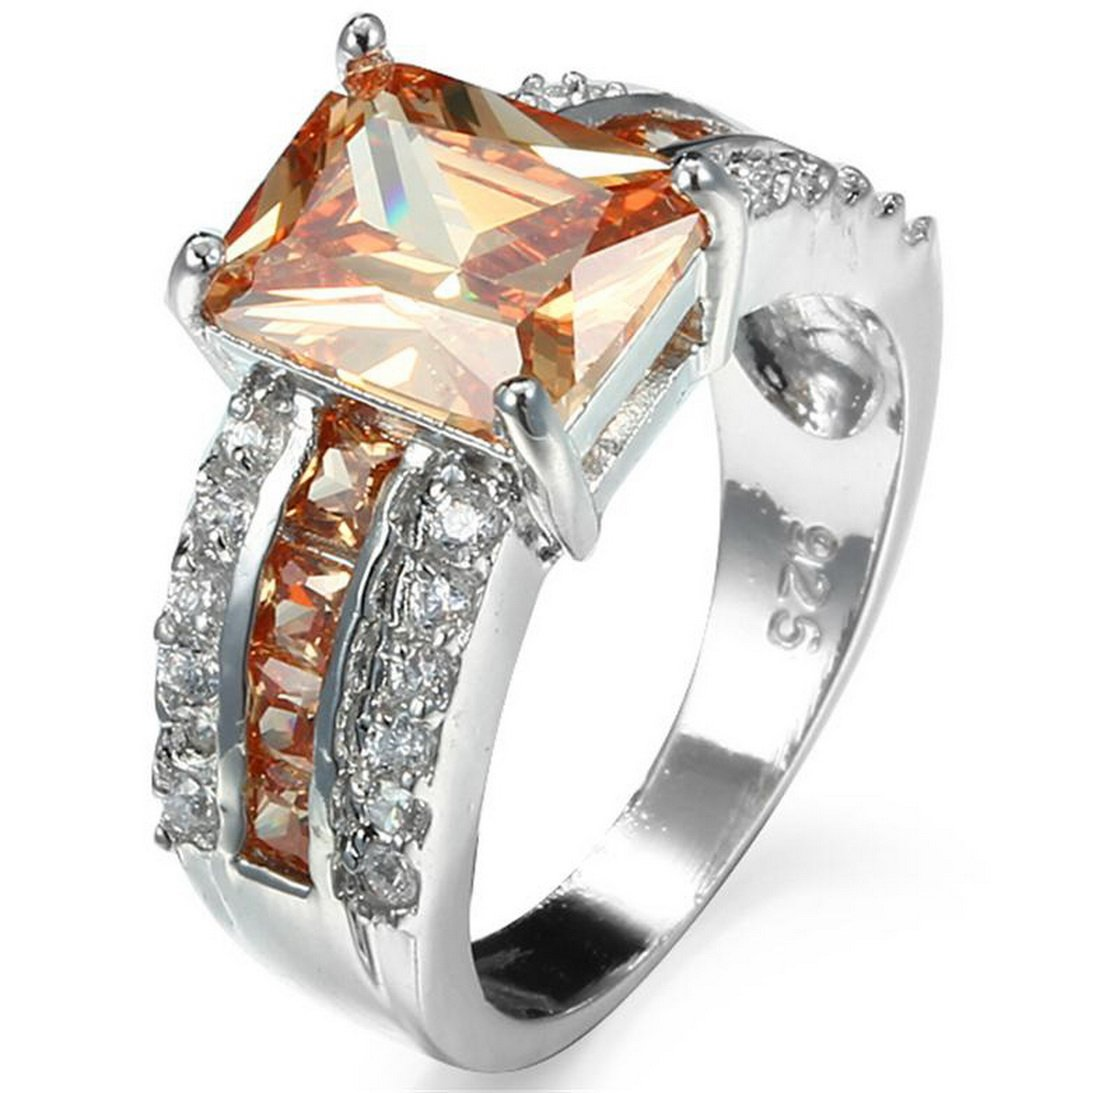 PSRINGS ''Champagne Morganite Sapphire Ring With Crystal Zircon 10KT White Gold Filled Promise Rings ''''925'''' Tab Ring Top'' 10.0